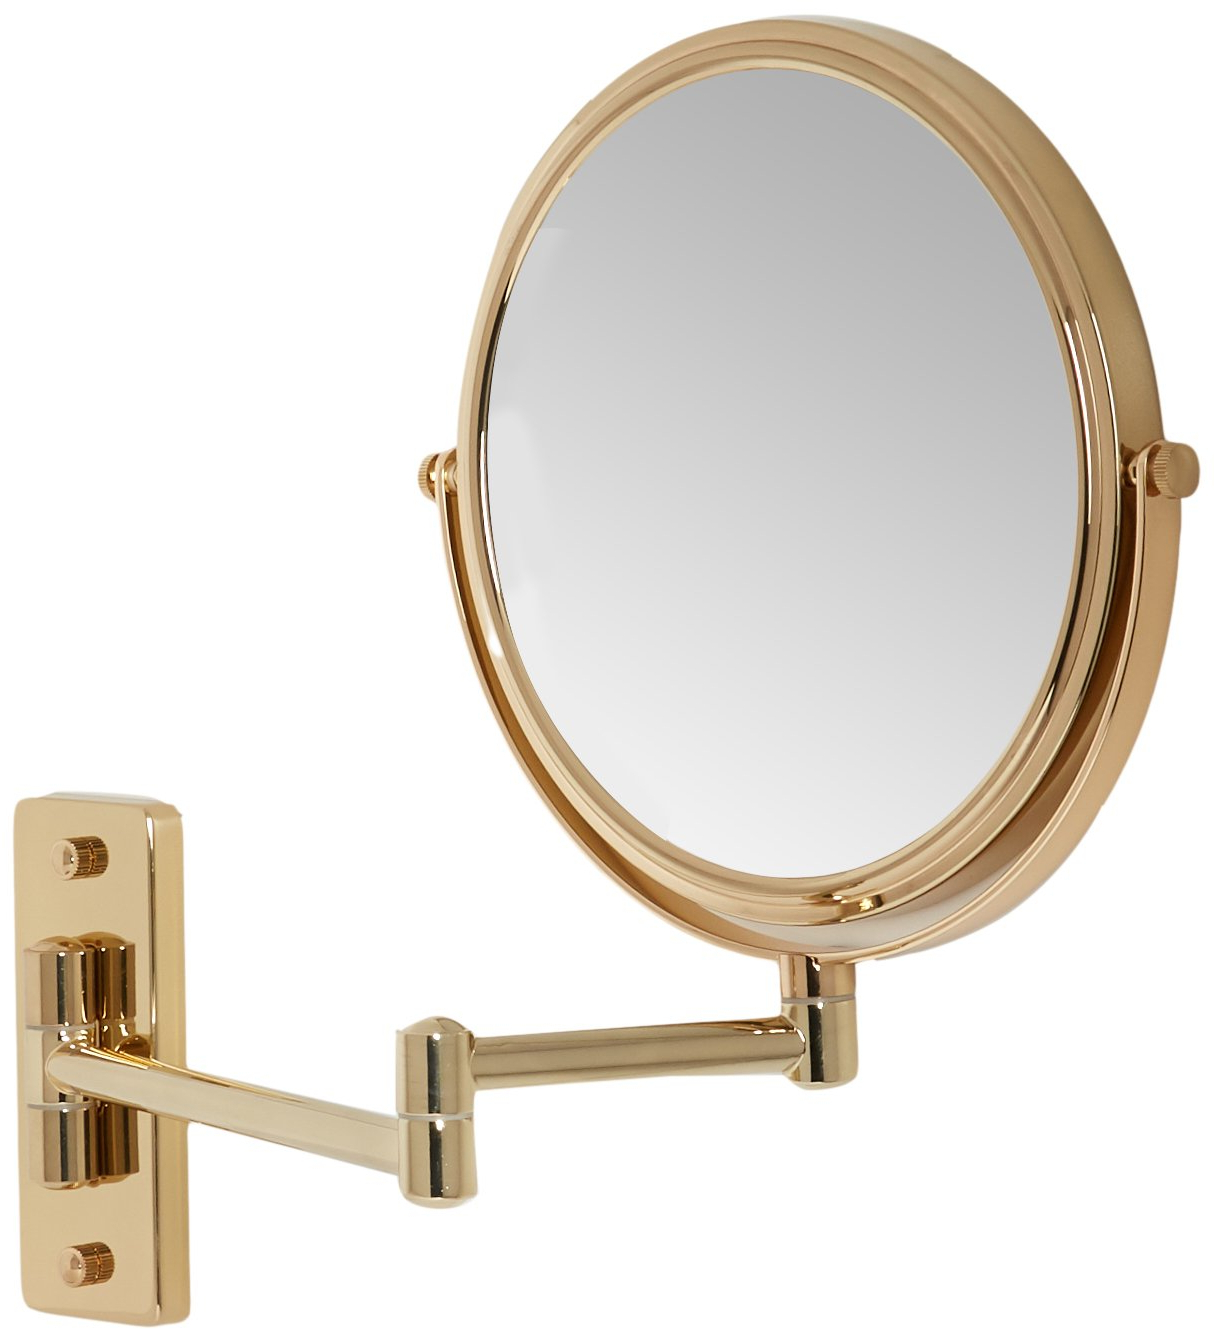 Most Up To Date Amazon: Mirror Image Double Arm Wall Mirror Rose Gold: Home Inside Extension Arm Wall Mirrors (View 18 of 20)